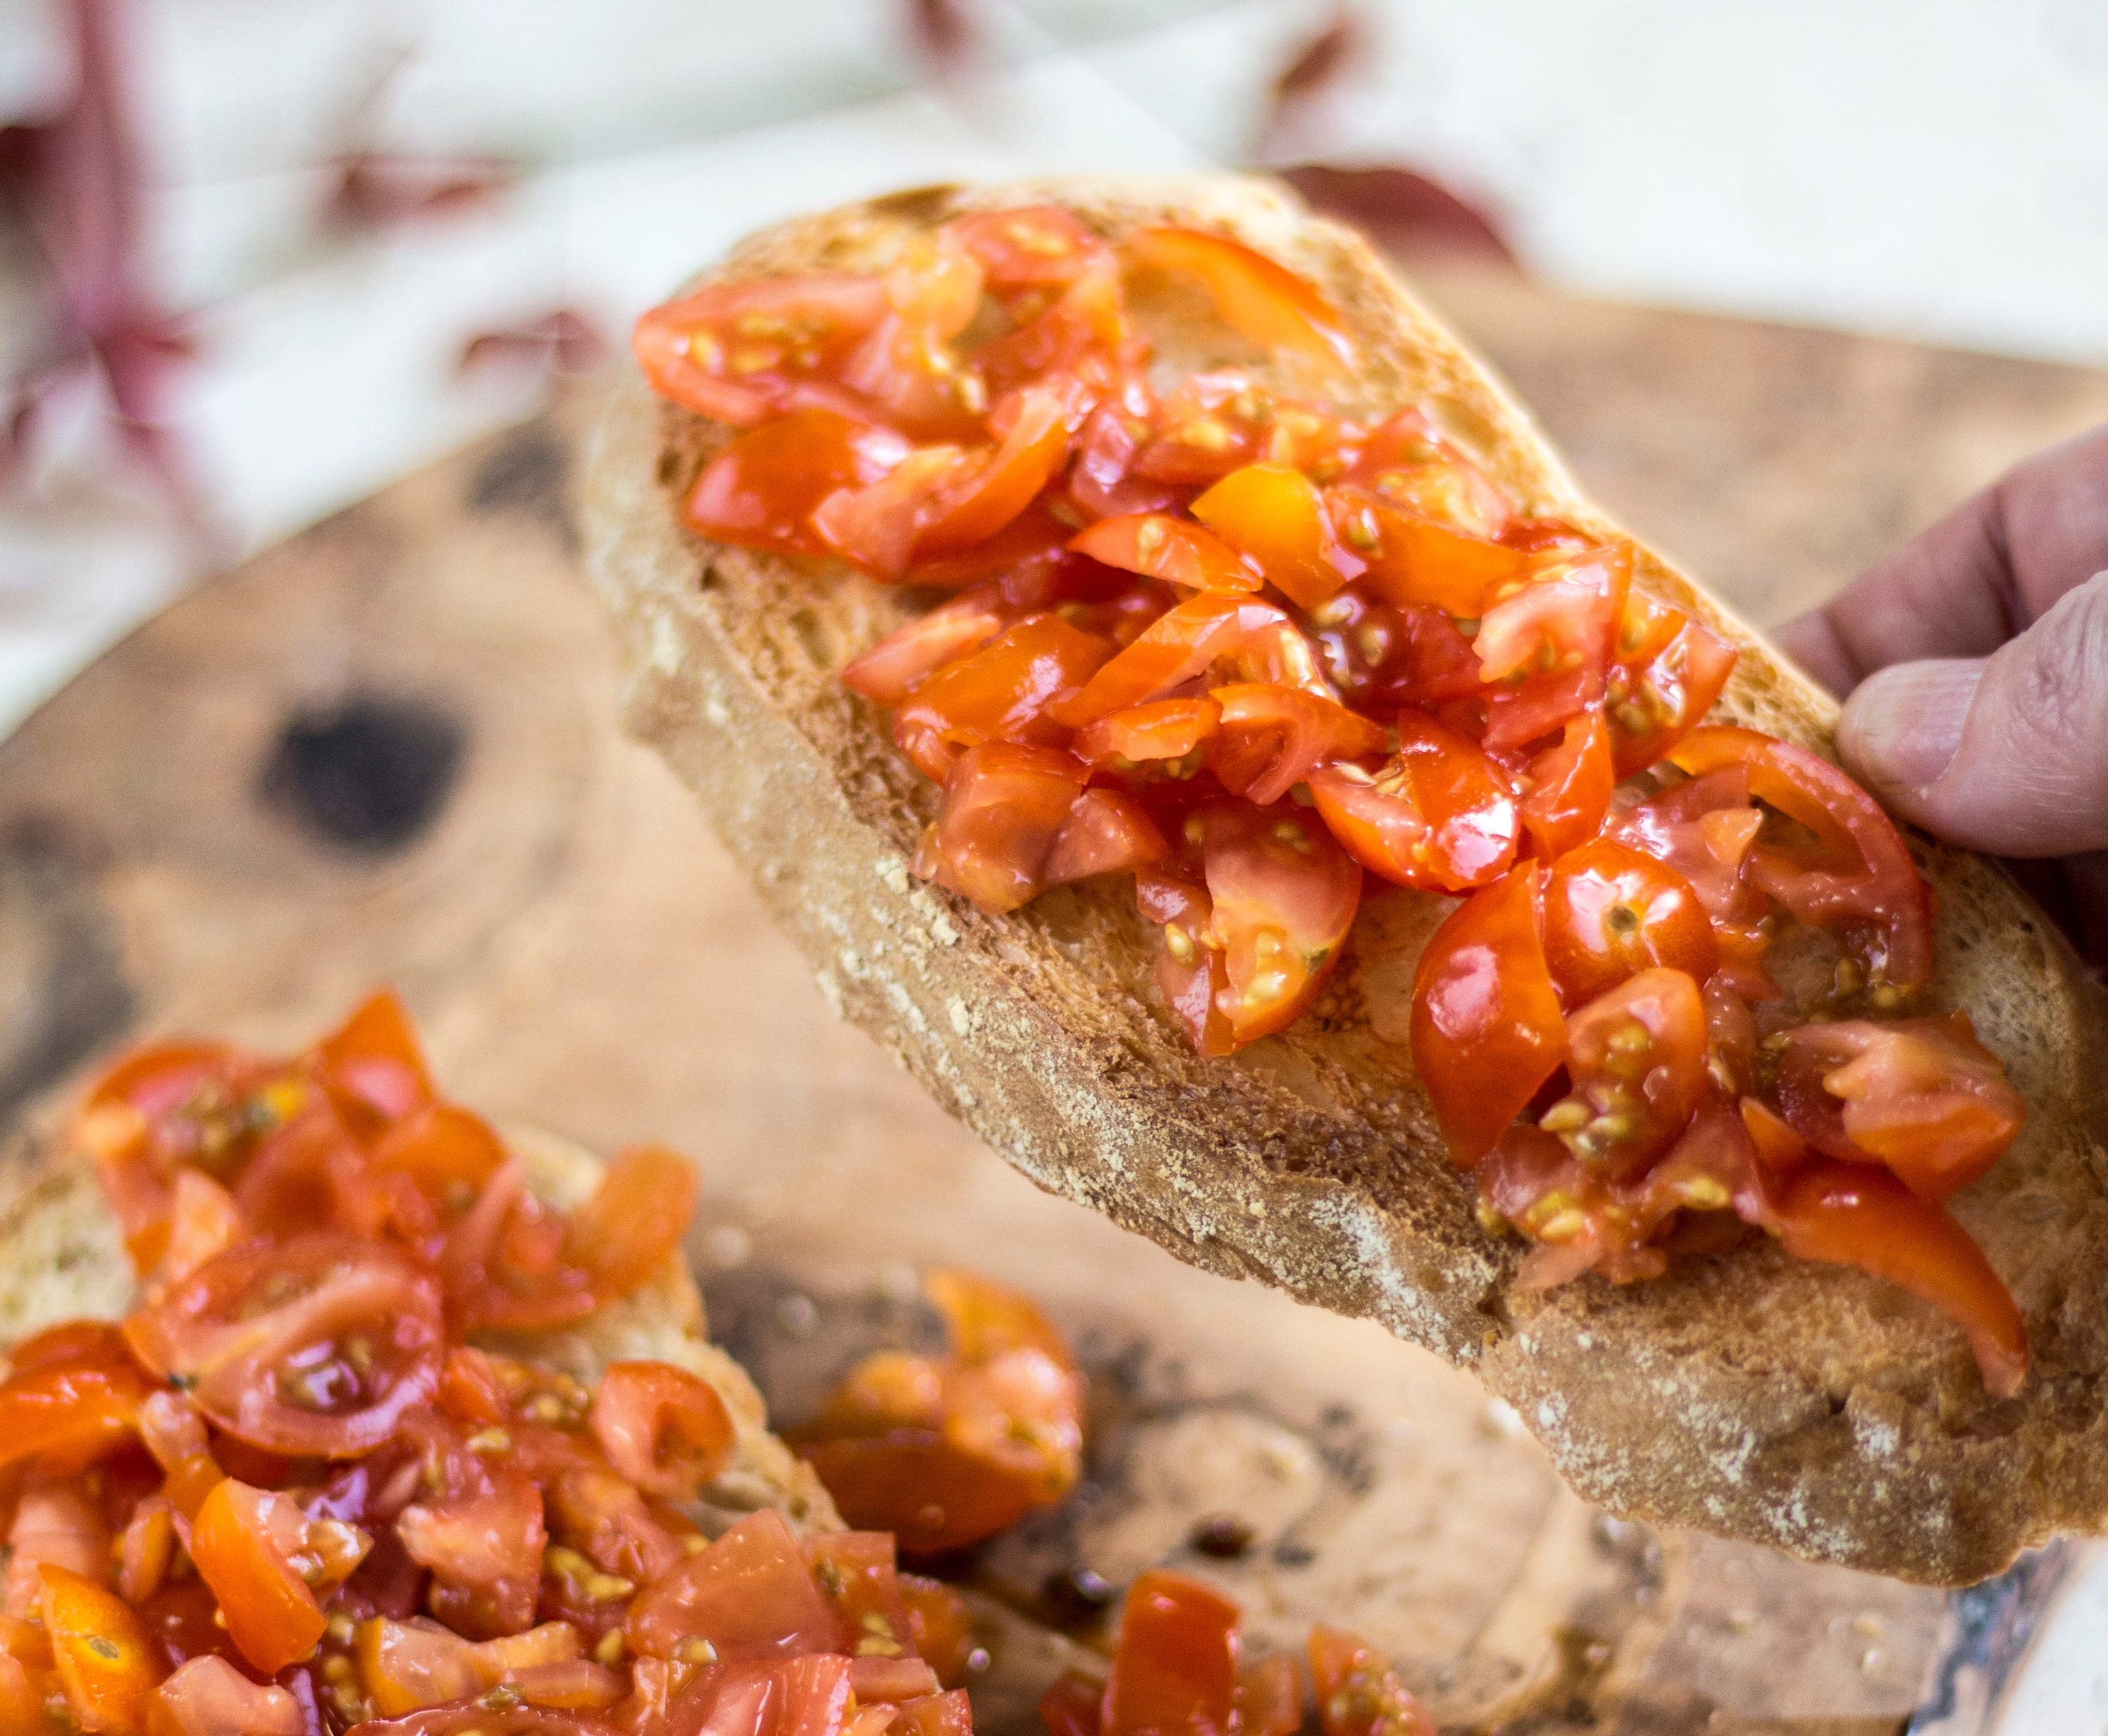 Image of bruschetta, in this case tomatoes on toasted sourdough